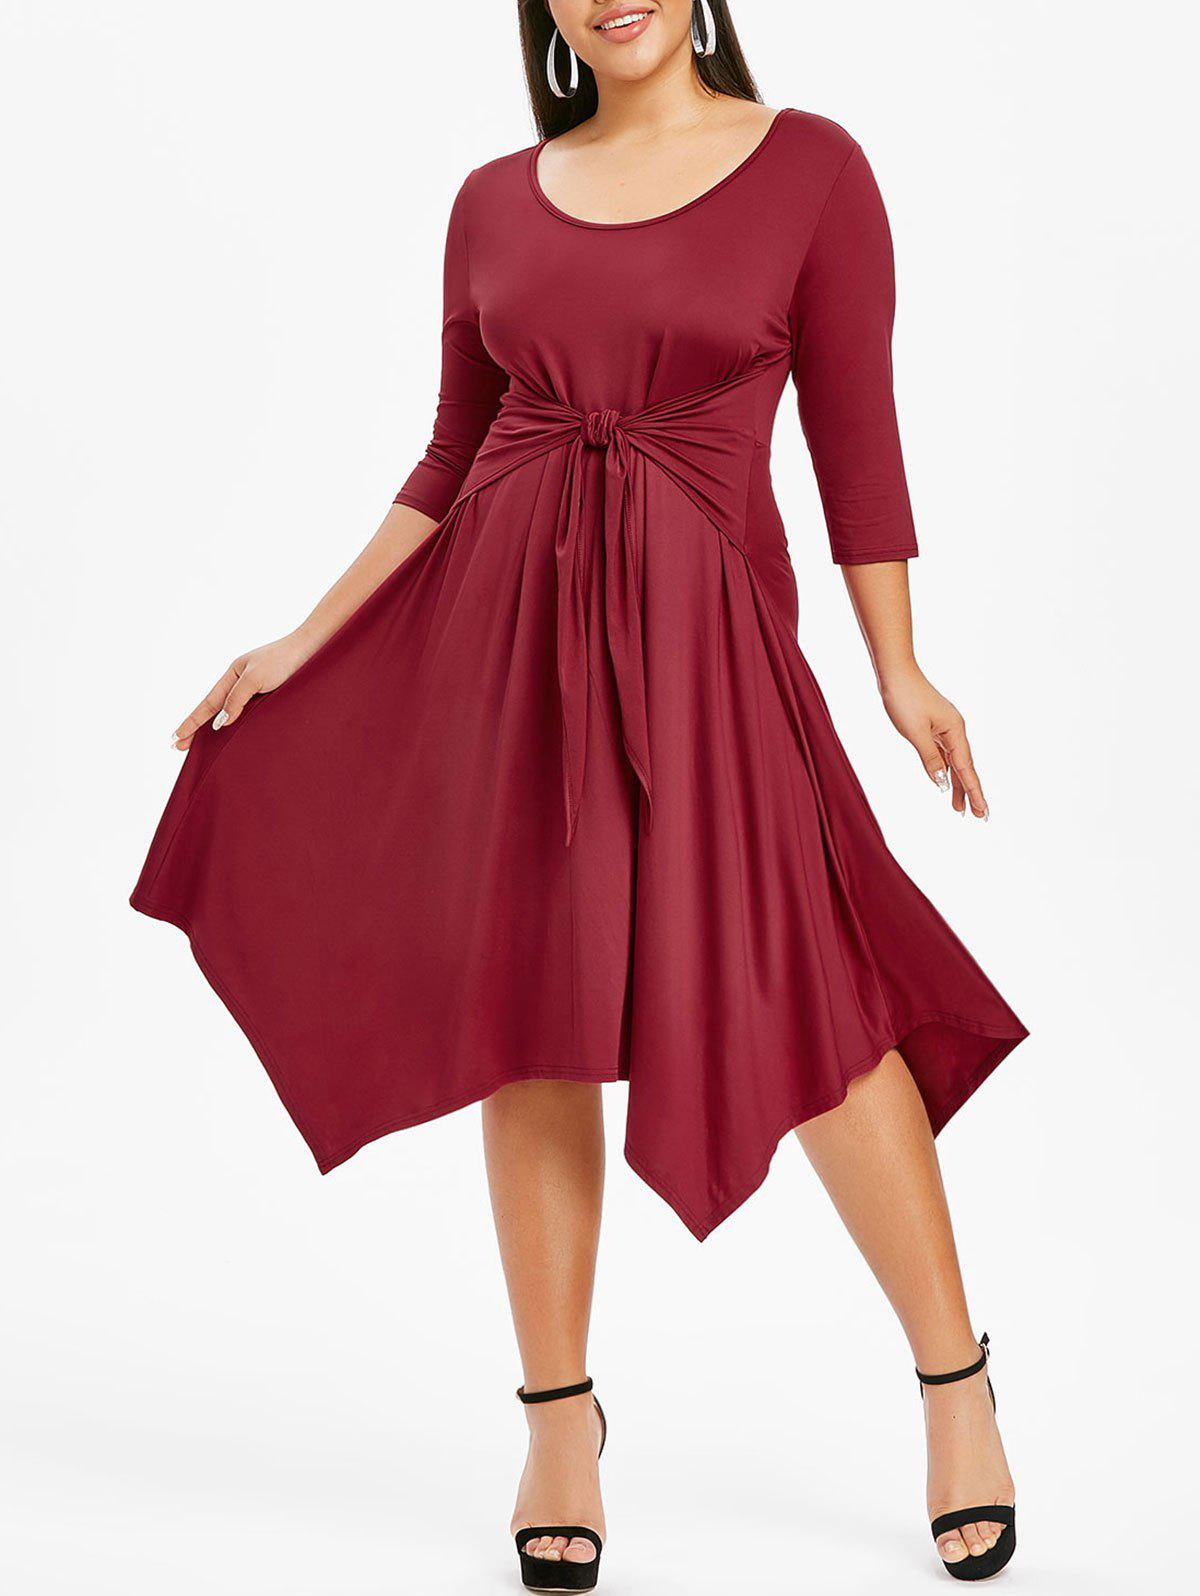 Plus Size Solid Color Handkerchief Dress - BLOOD RED 5X